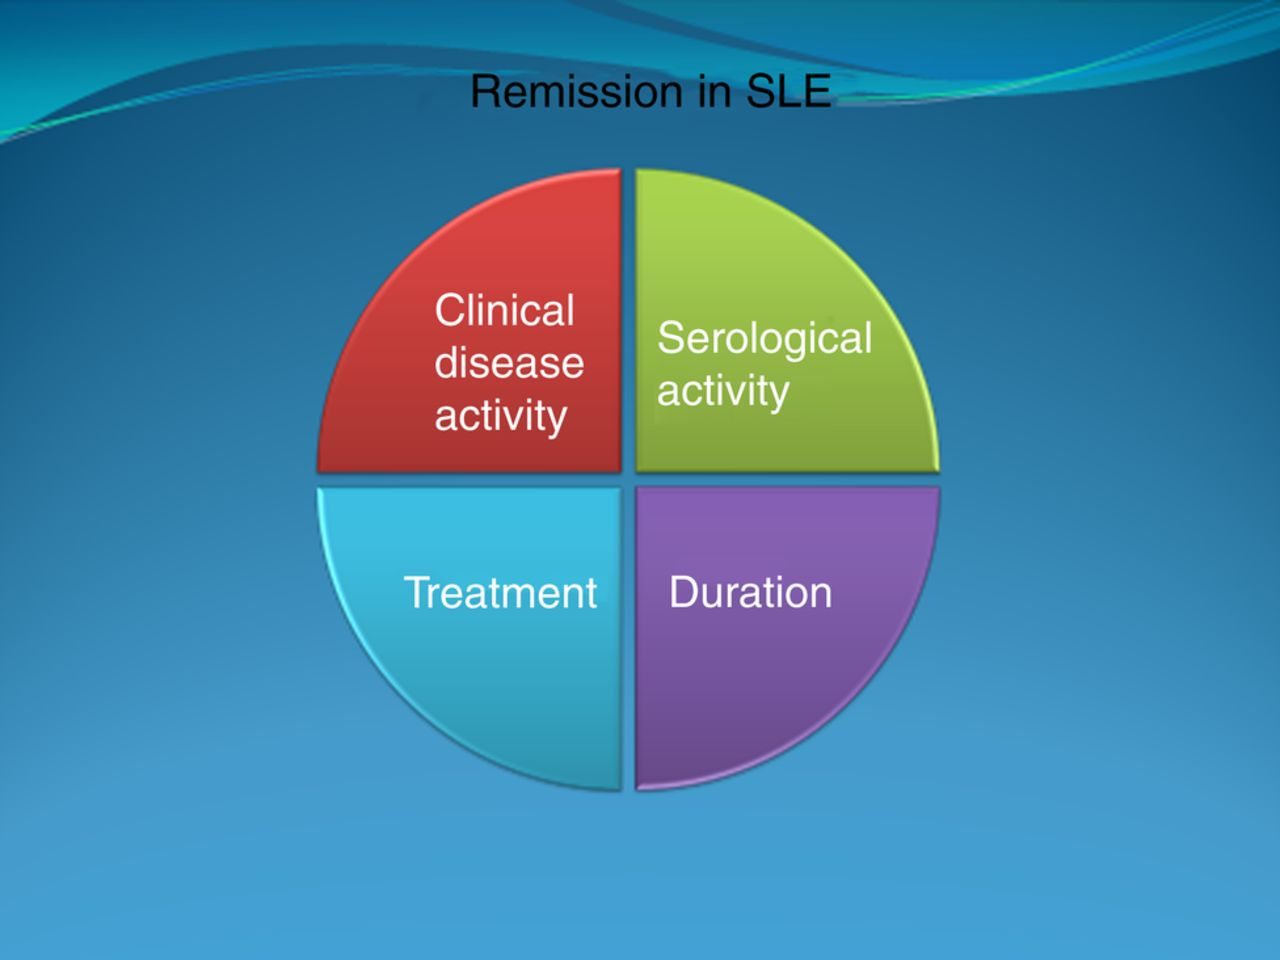 Remission in SLE: closing in on the target | Annals of the Rheumatic ...